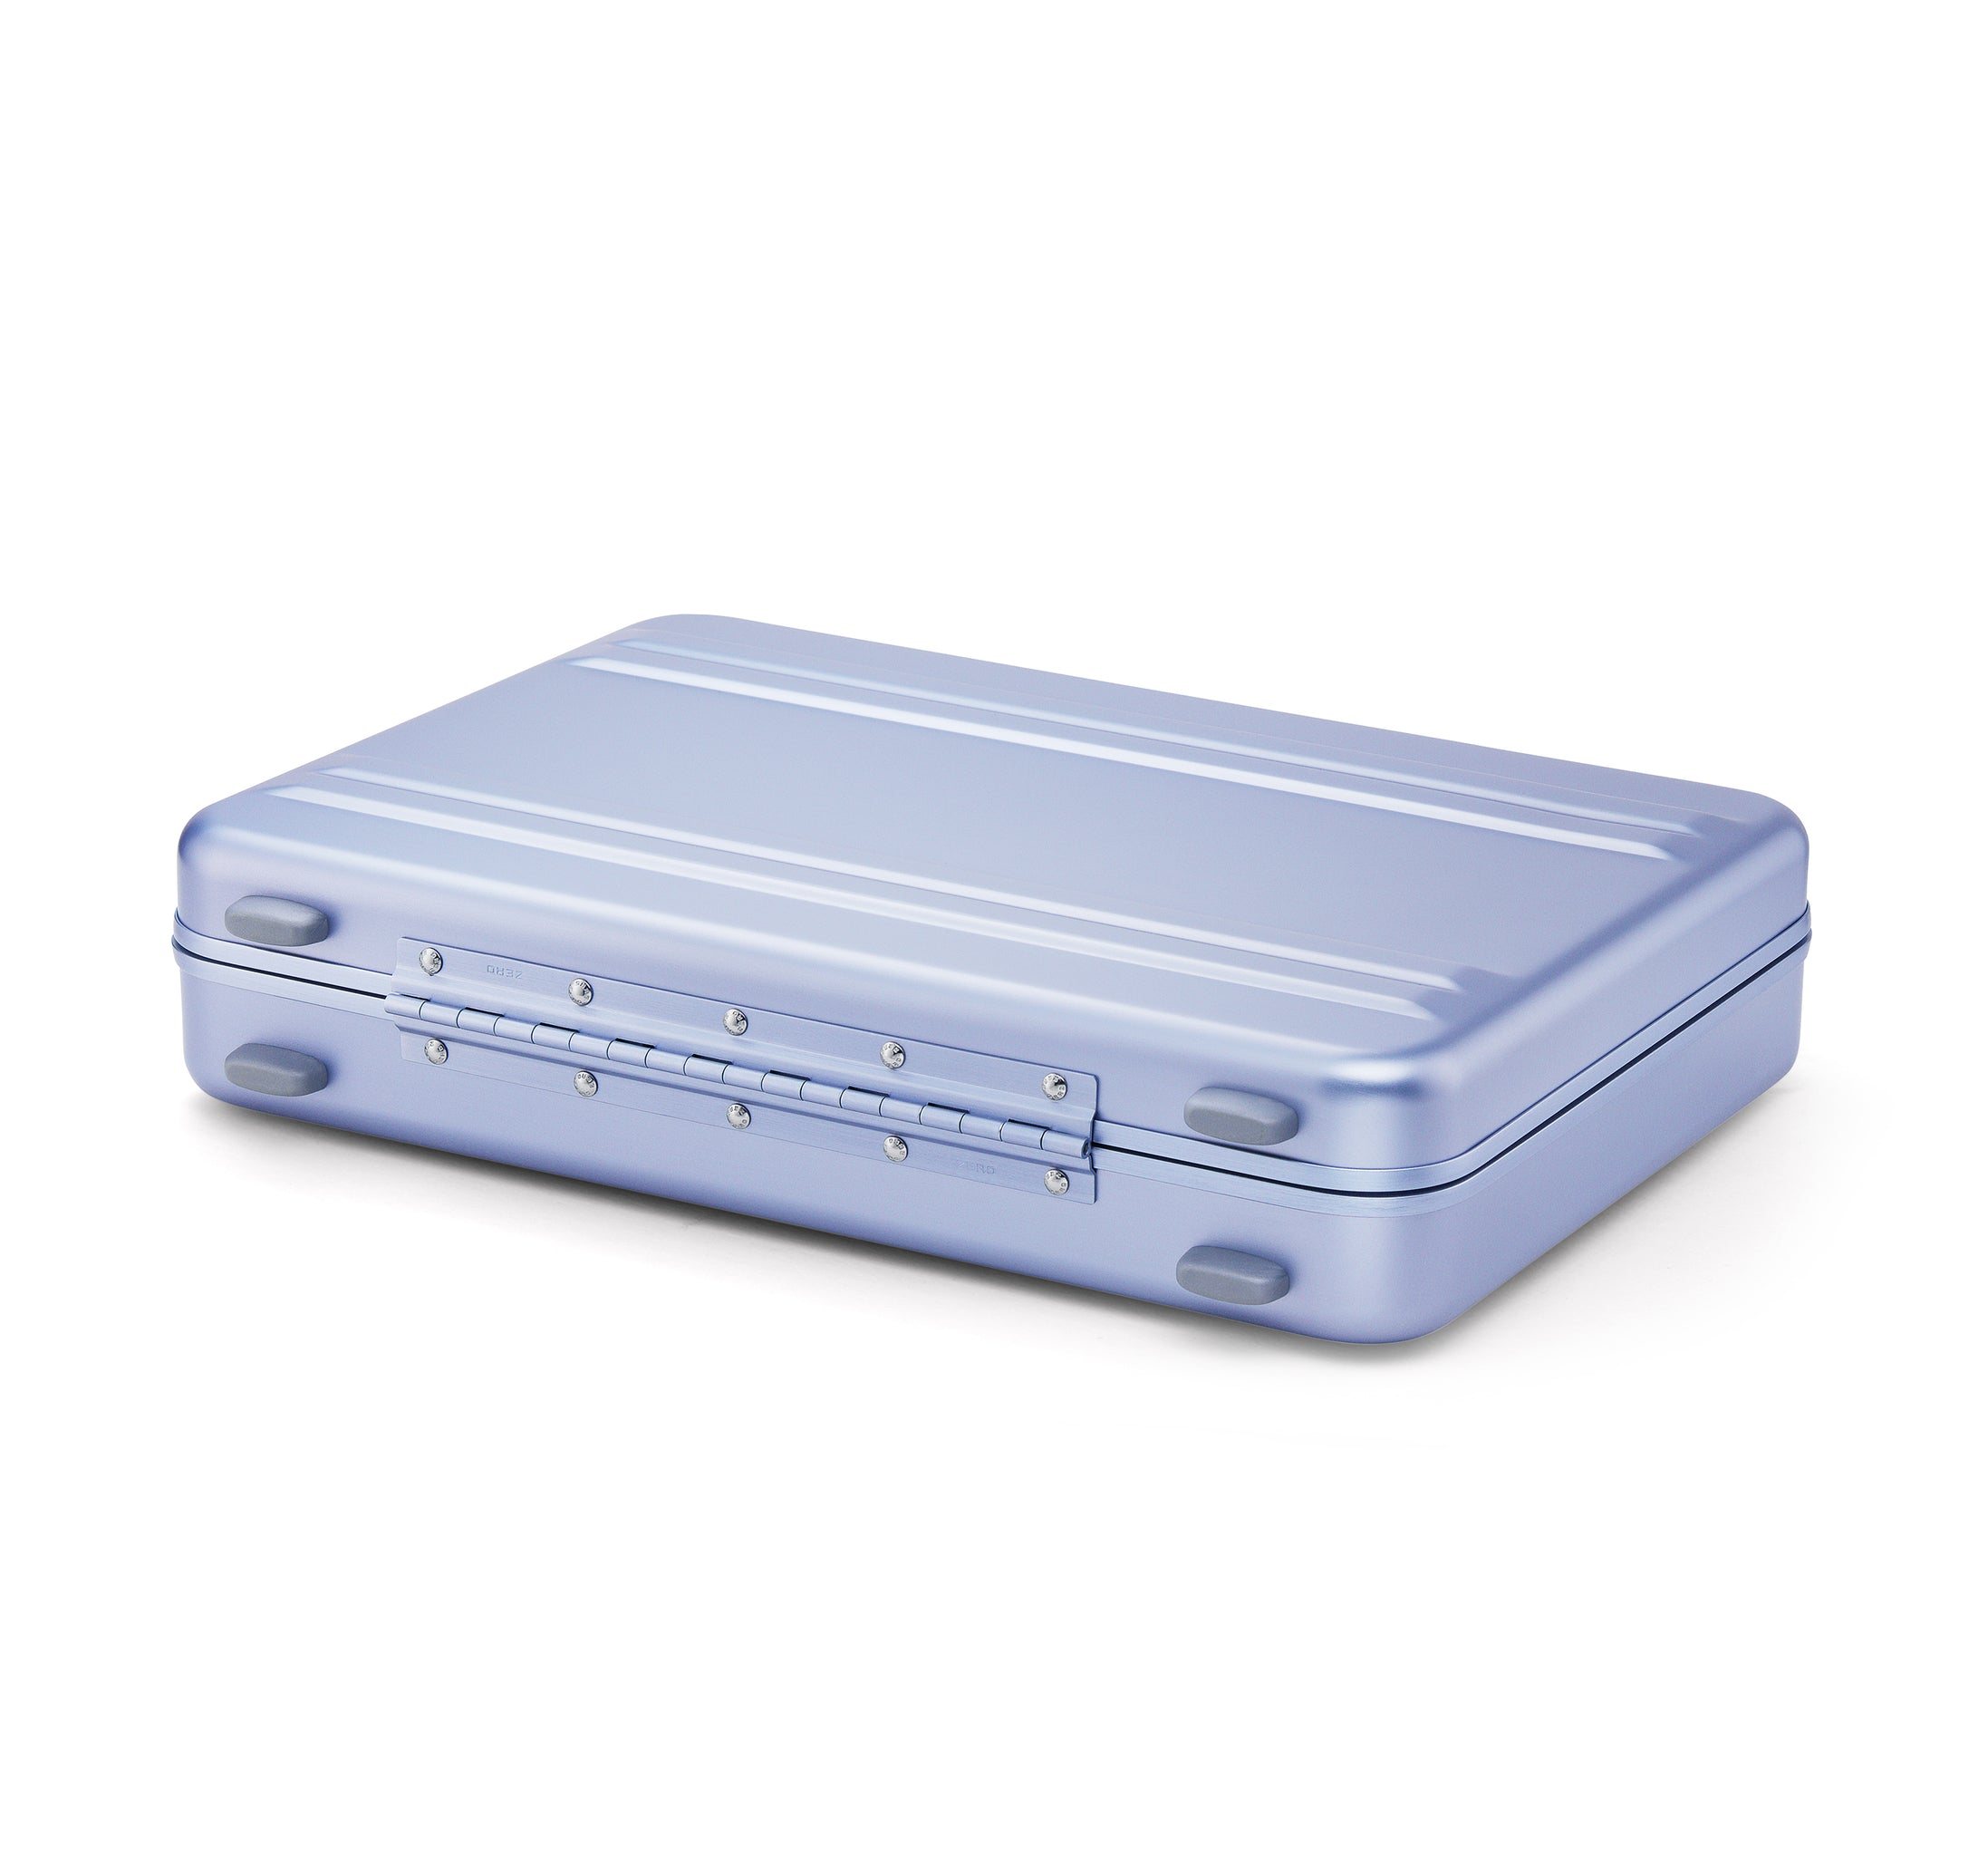 We have polished blue cases